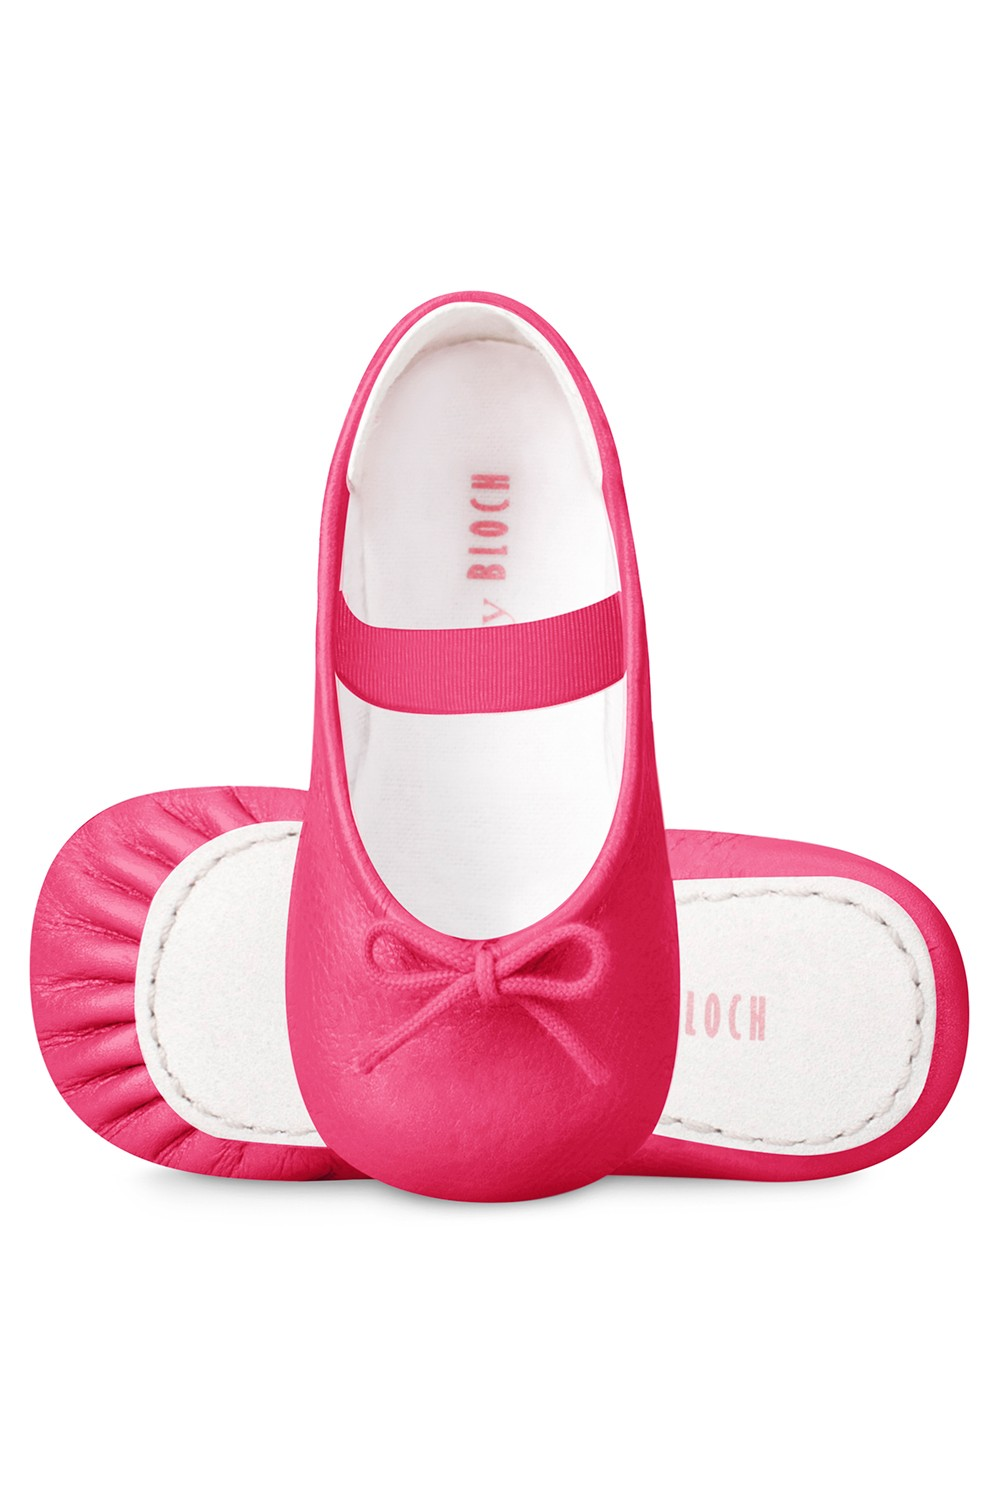 Baby Pink Baby Arabella Babies Fashion Shoes